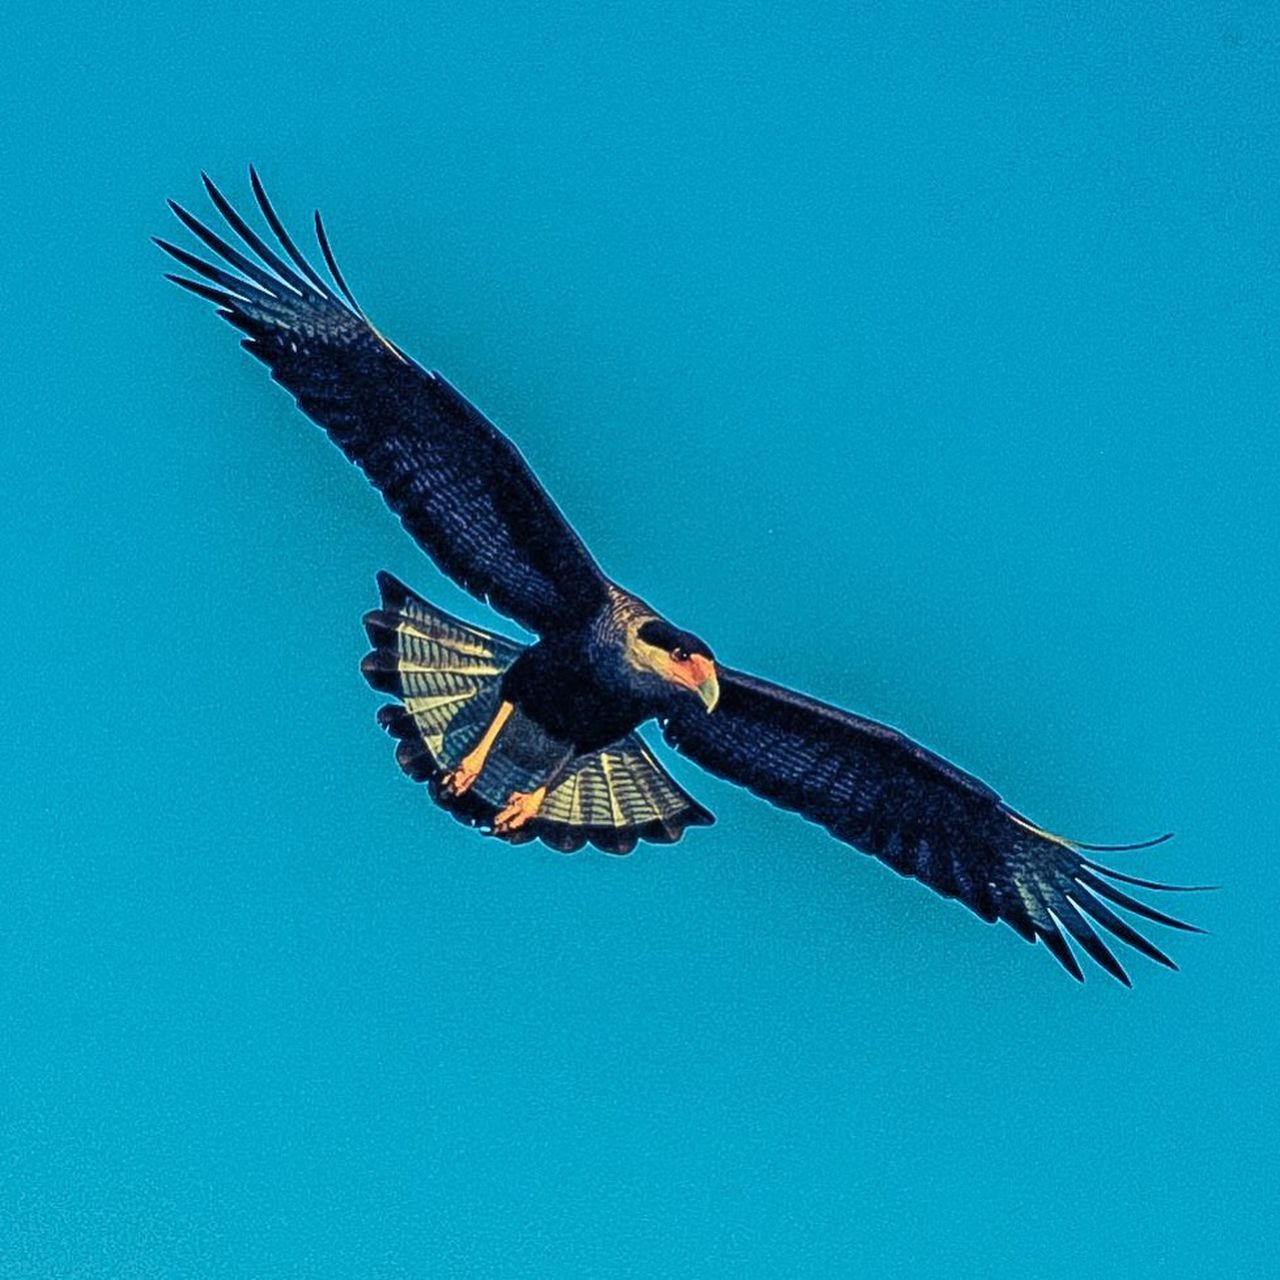 bird, flying, blue, one animal, spread wings, animals in the wild, animal wildlife, clear sky, animal themes, mid-air, nature, no people, outdoors, bird of prey, day